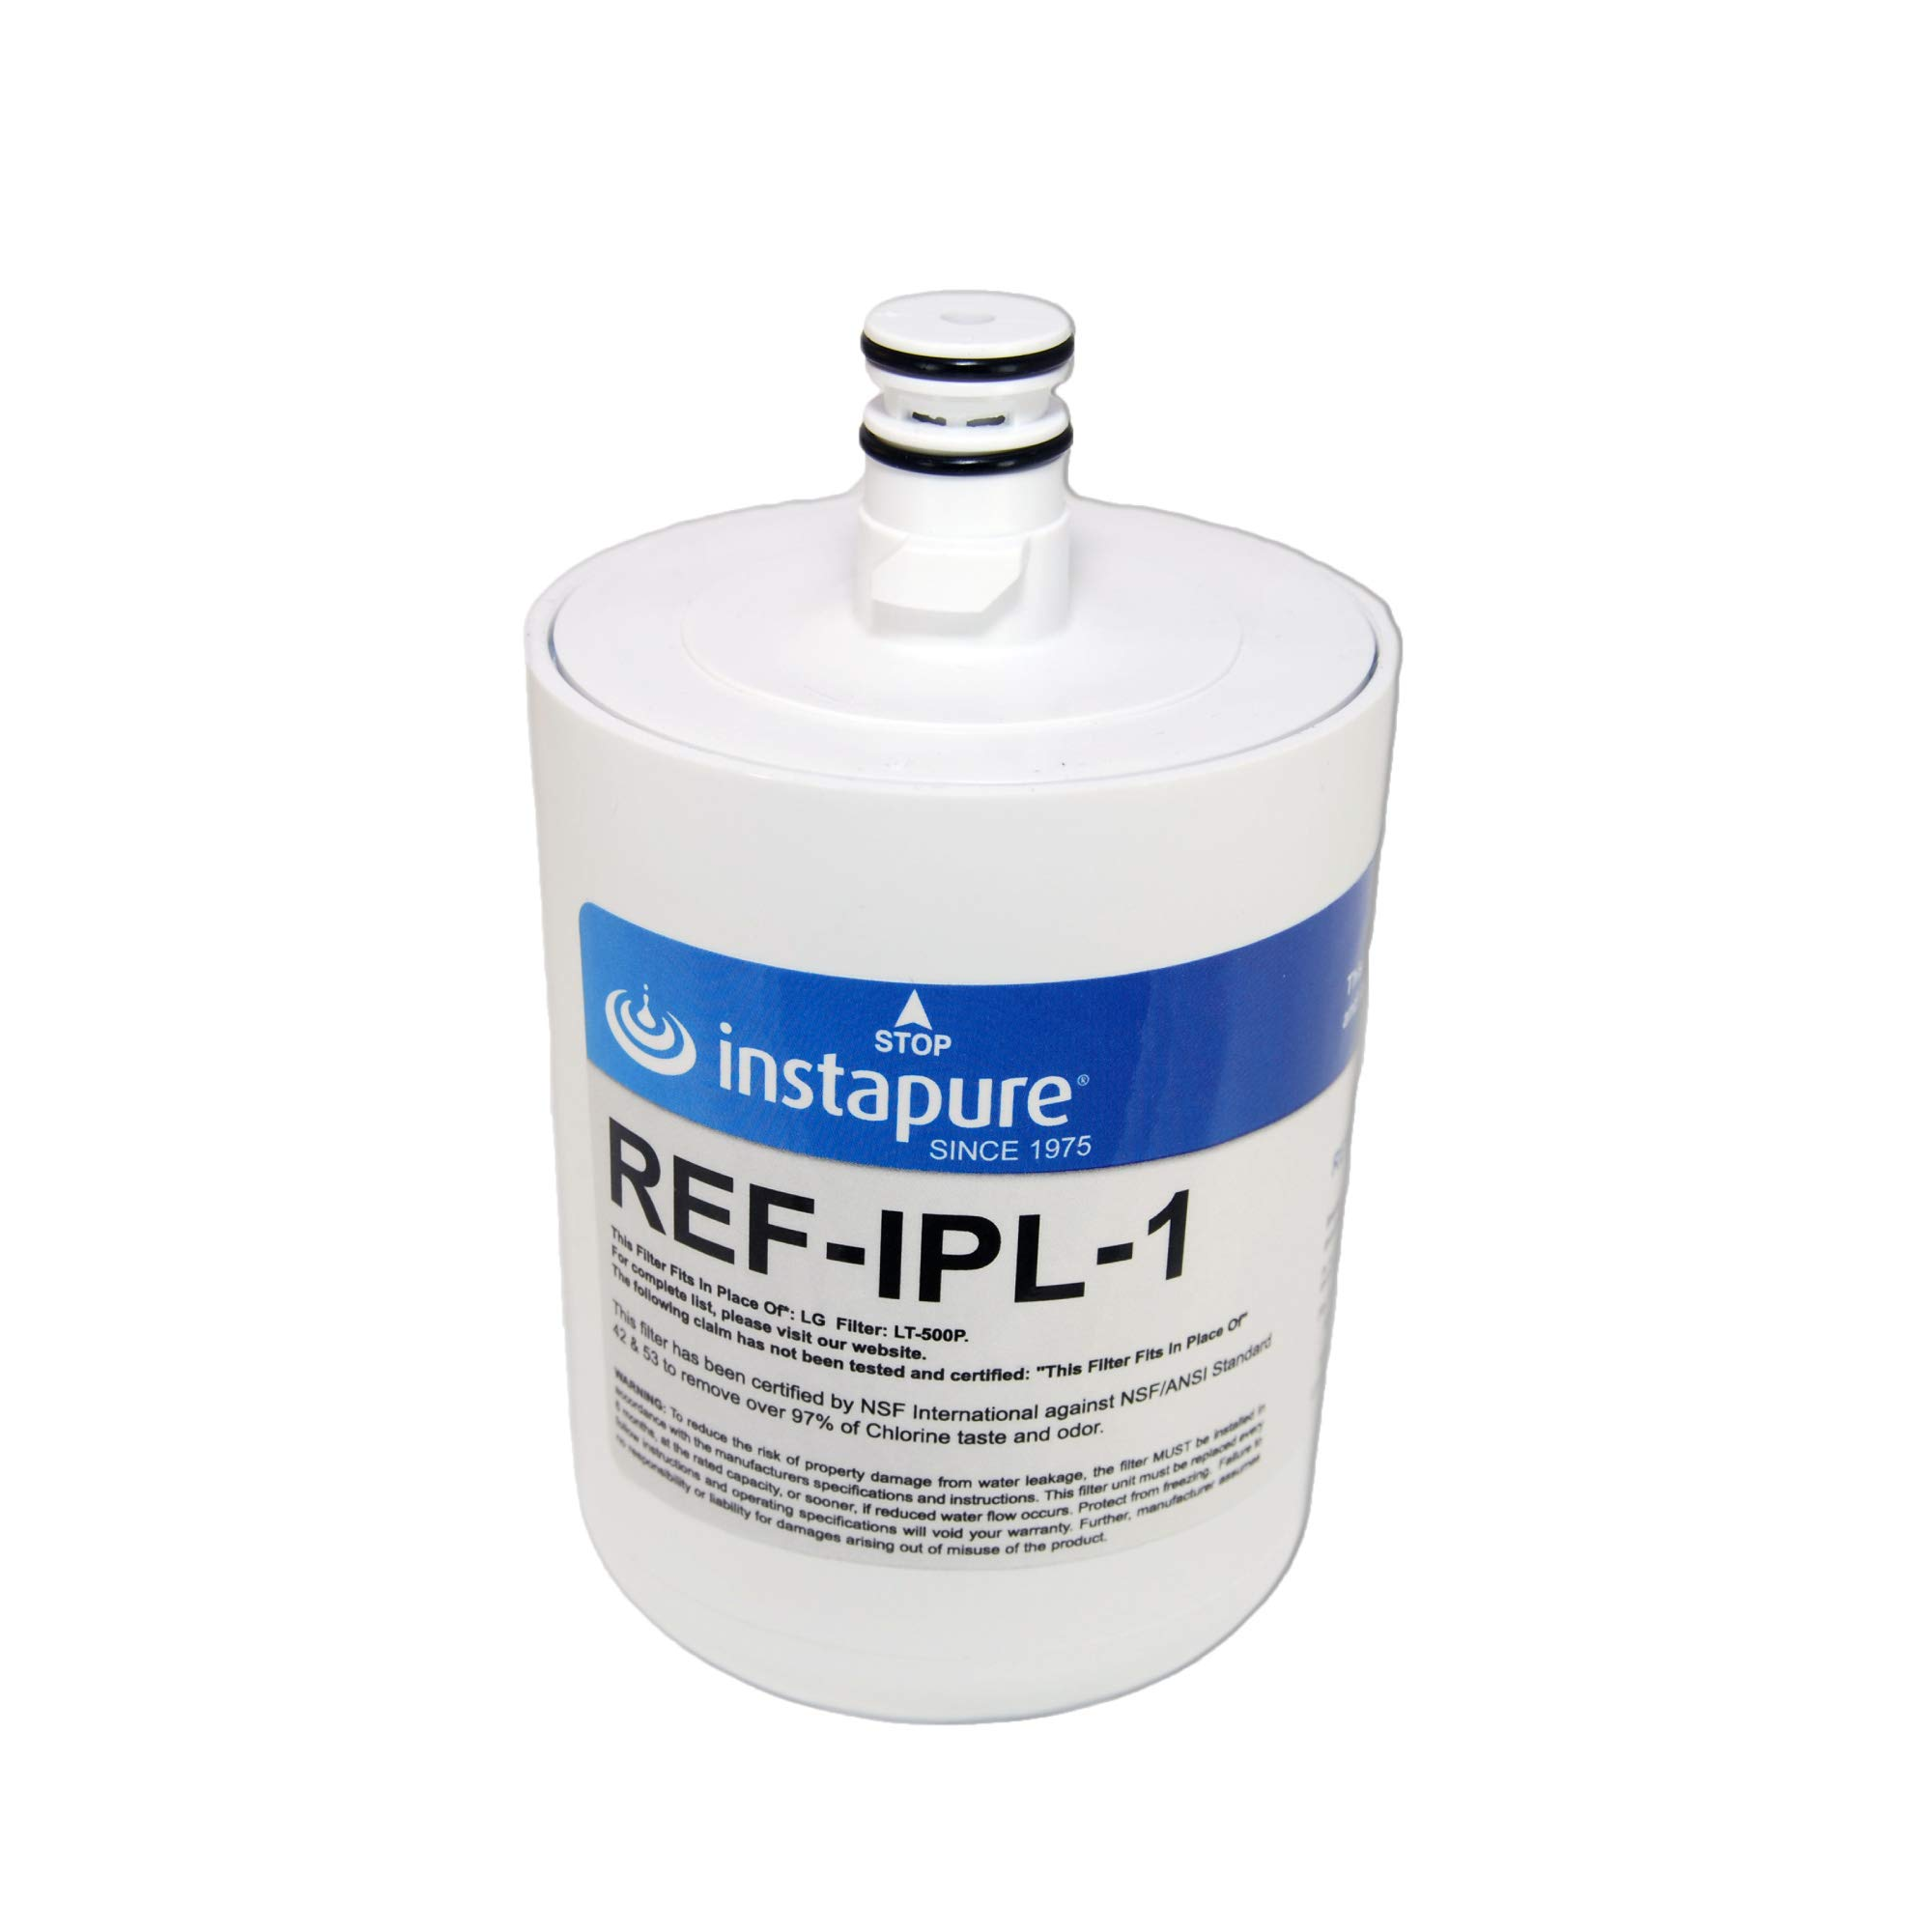 Instapure REF-IPL-1 ULTRA Refrigerator Filter, MADE IN USA, Compatible with LG LT-500P, LG 5231JA20, Tested & Certified by NSF to ANSI/NSF 42 & 53